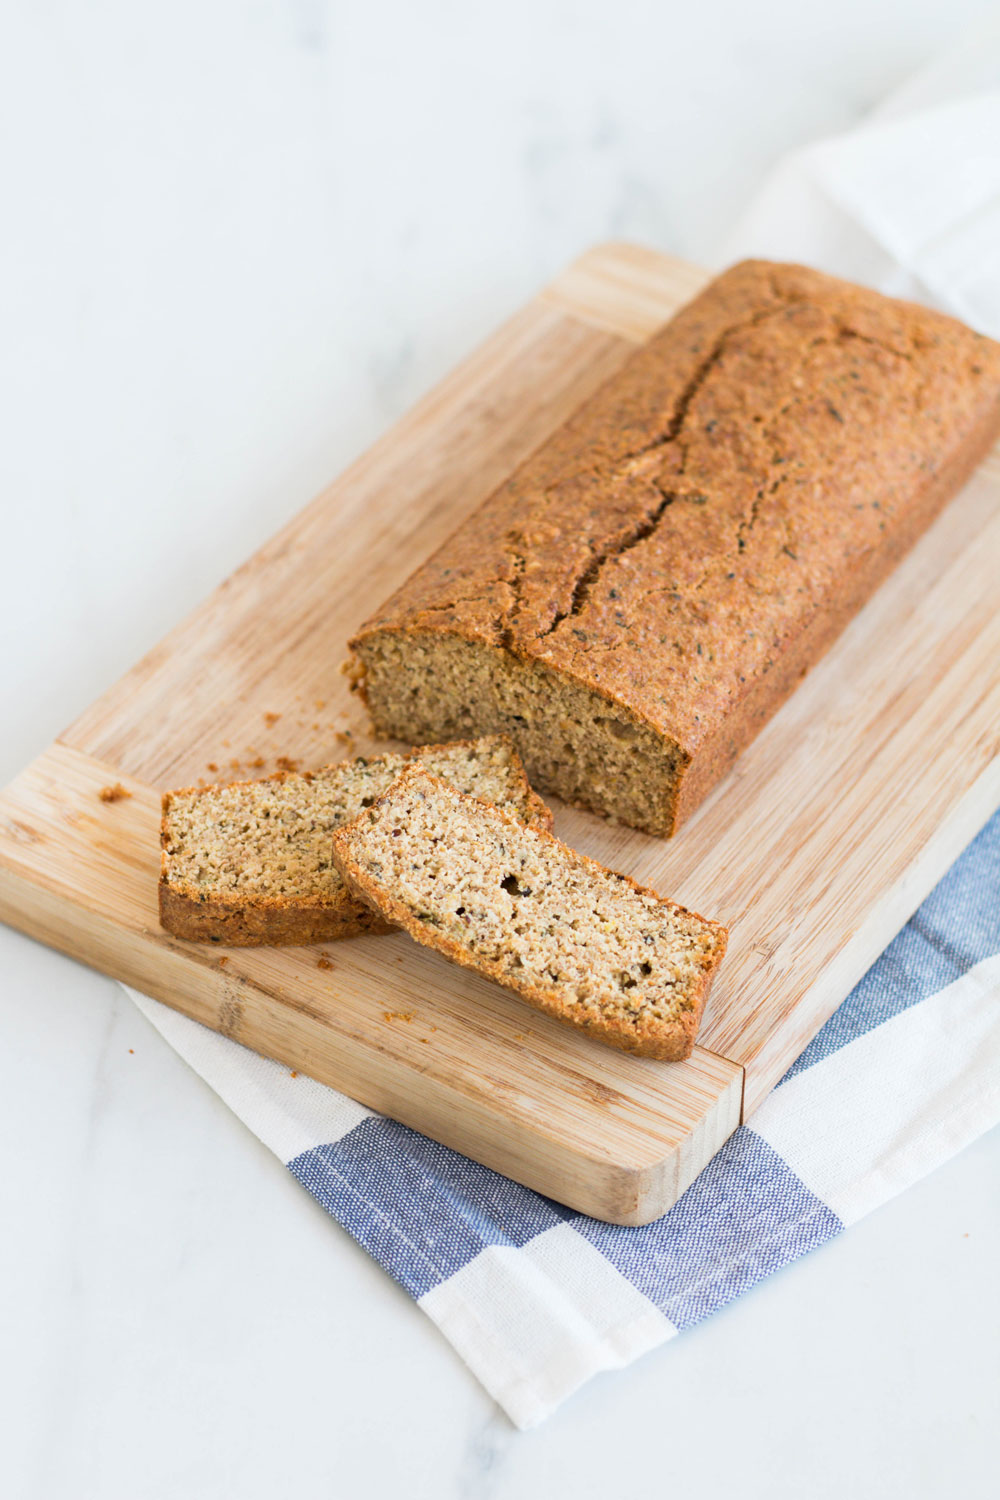 High Protein & High Omega-3 Gluten-Free Bread with a Meditteranean-style flavor that's perfect for sandwiches, egg and spinach toasts or to make healthier breadcrumbs or croutons for your soups and salads. https://www.spotebi.com/recipes/high-protein-omega-3-gluten-free-bread/